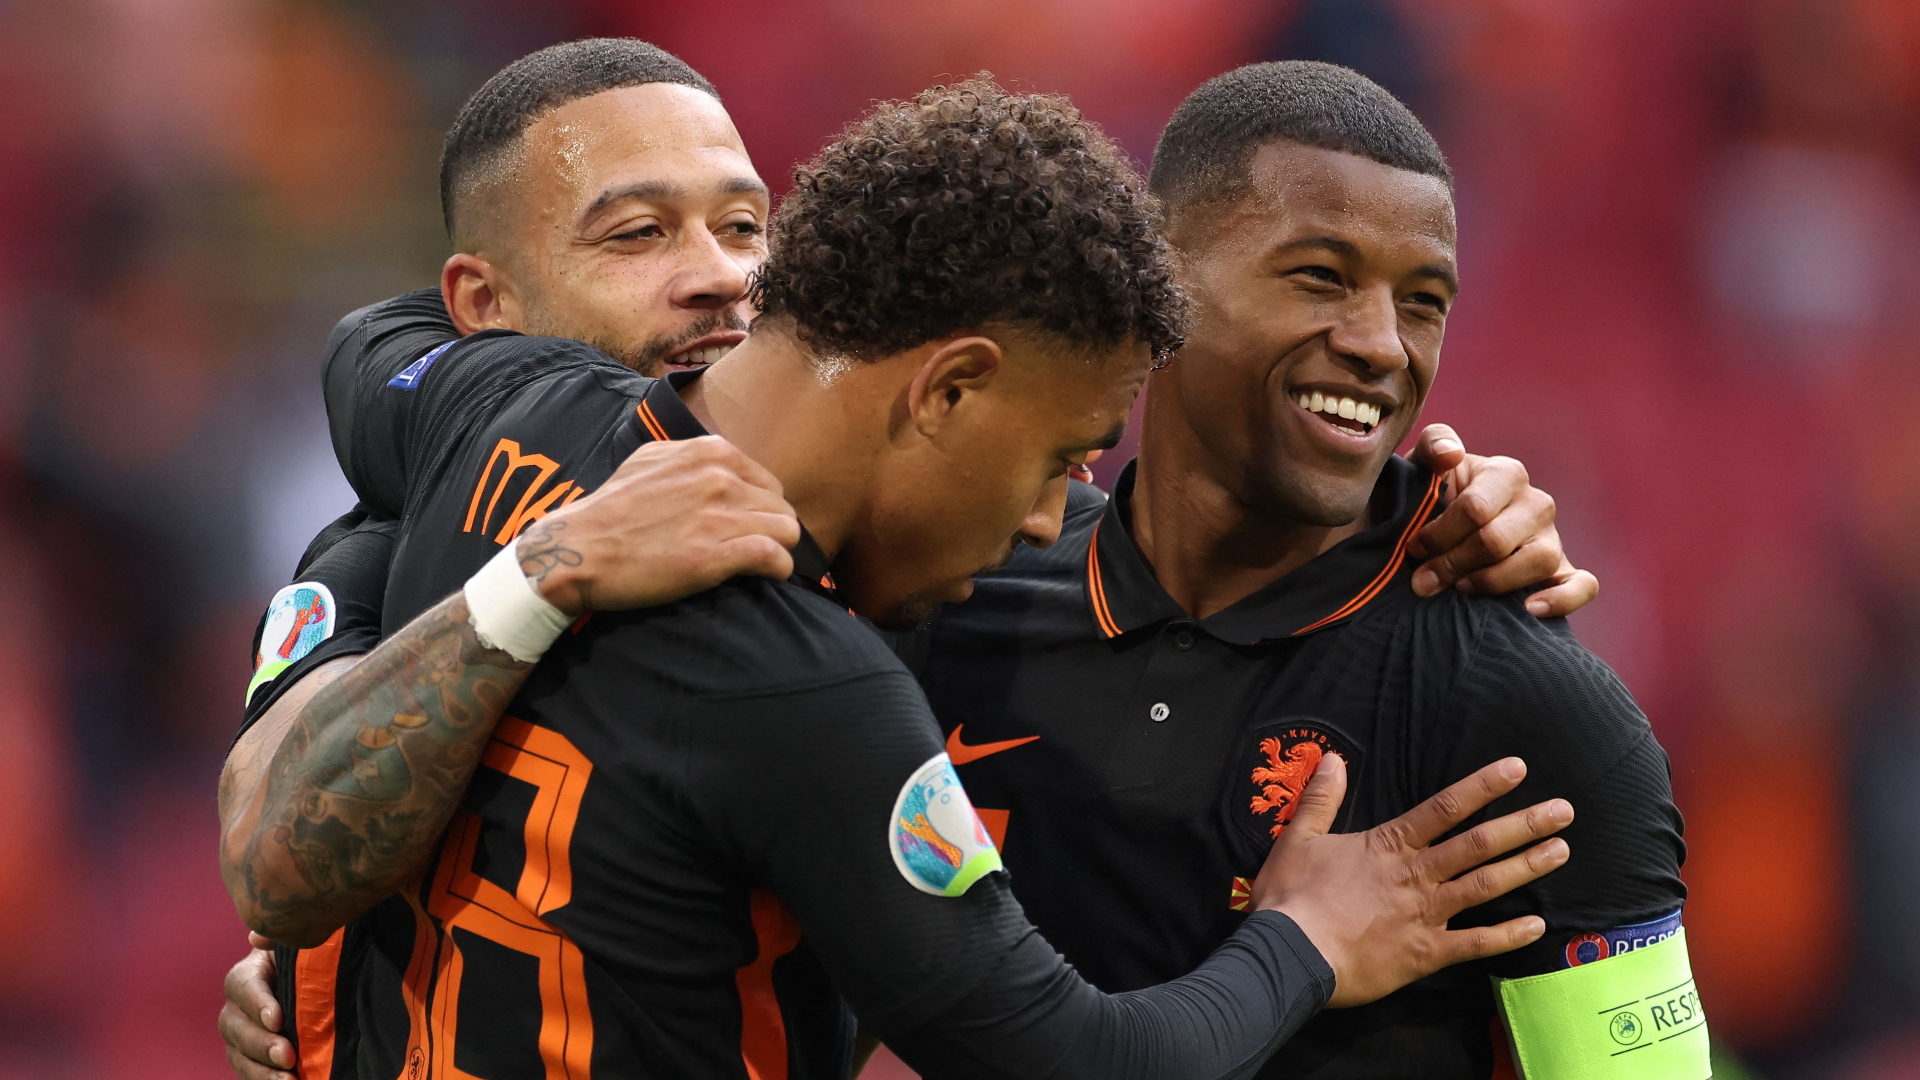 How to watch Netherlands vs Czech Republic in Euro 2020 Round of 16 from India?